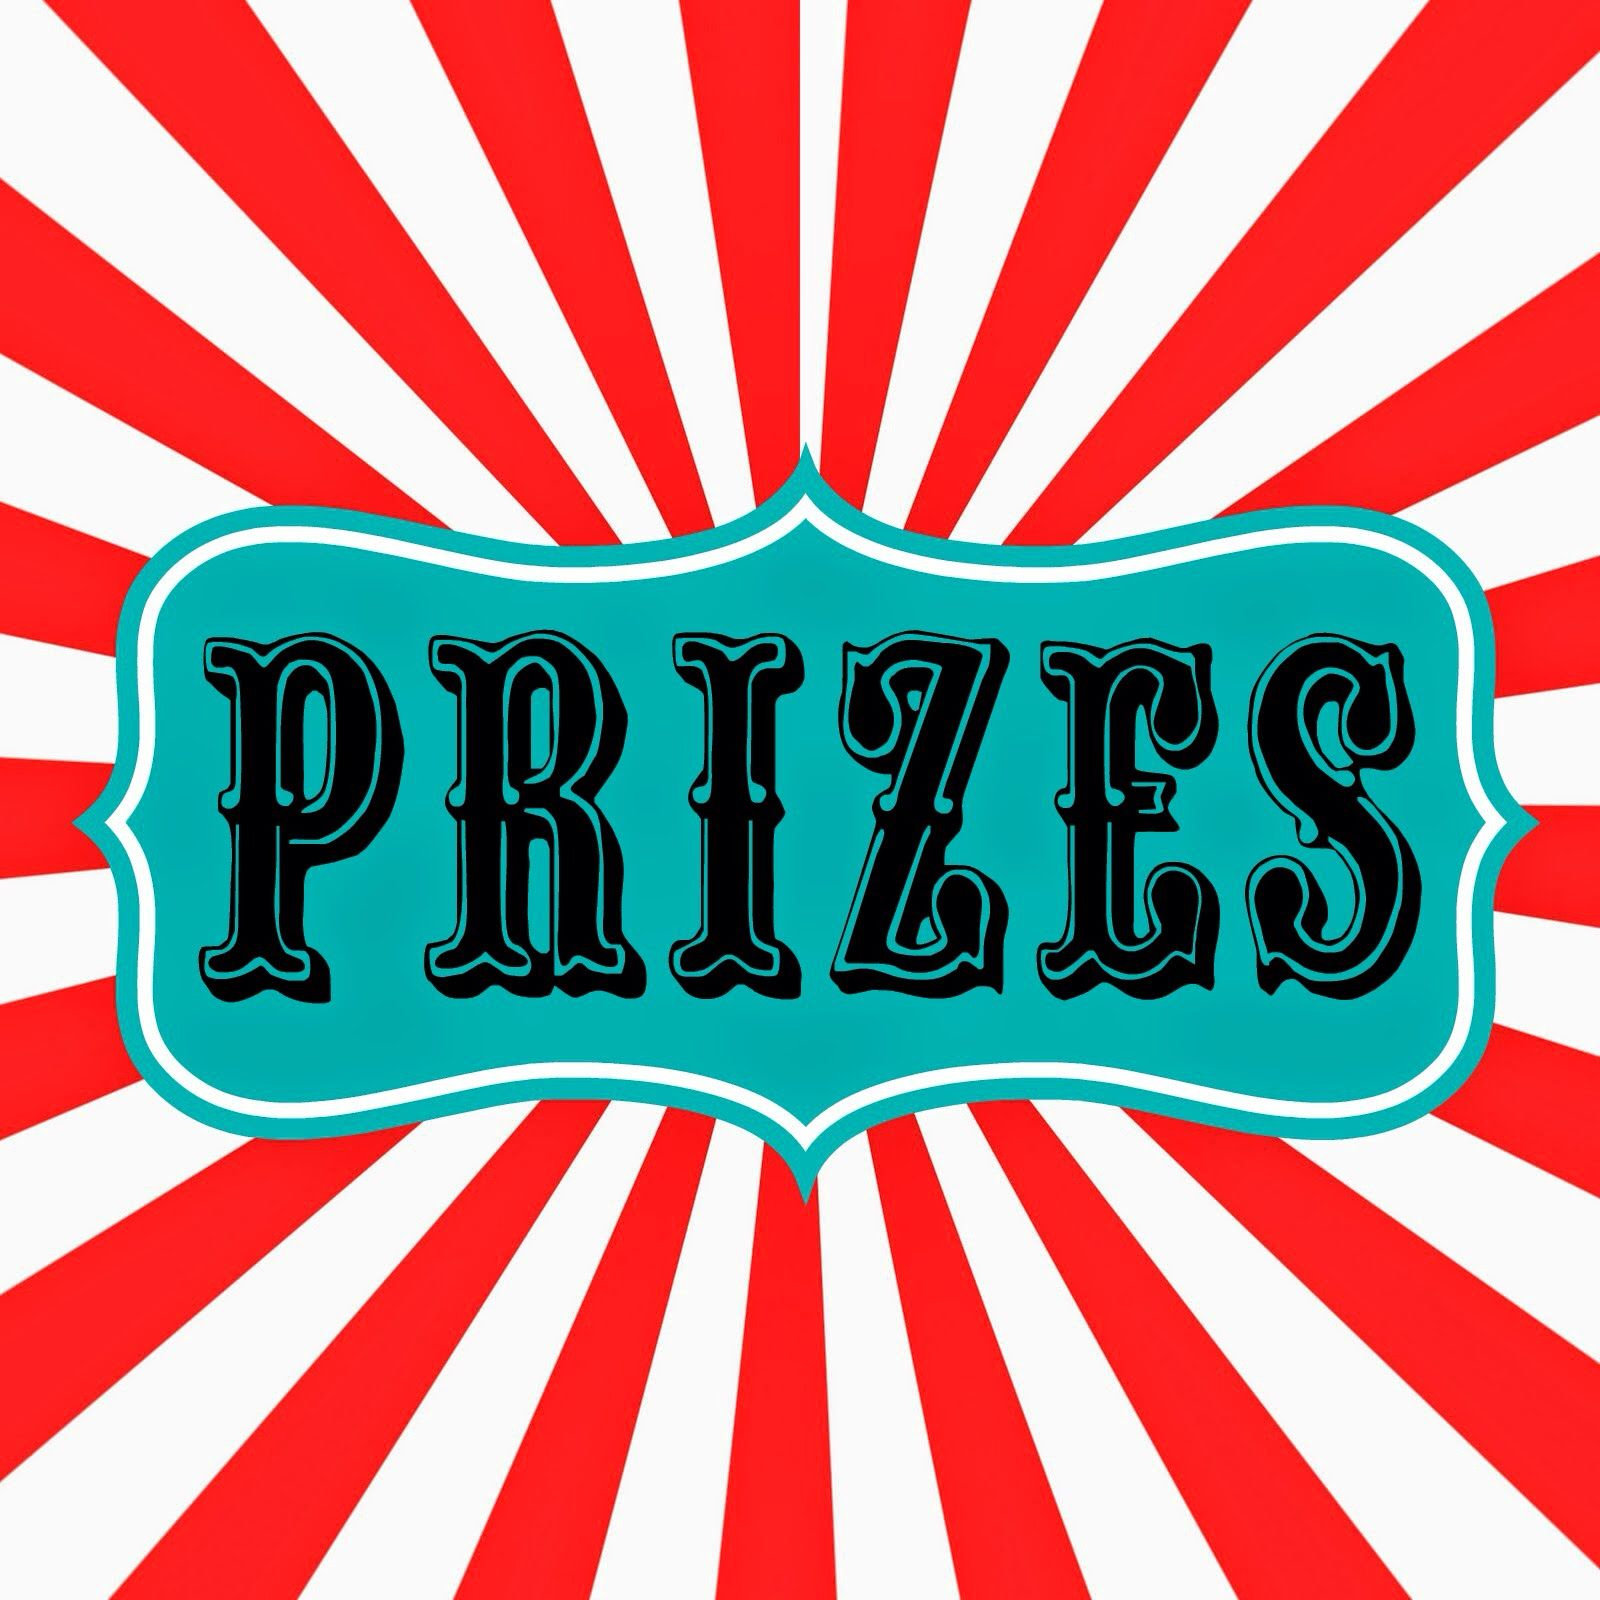 Prize Sign